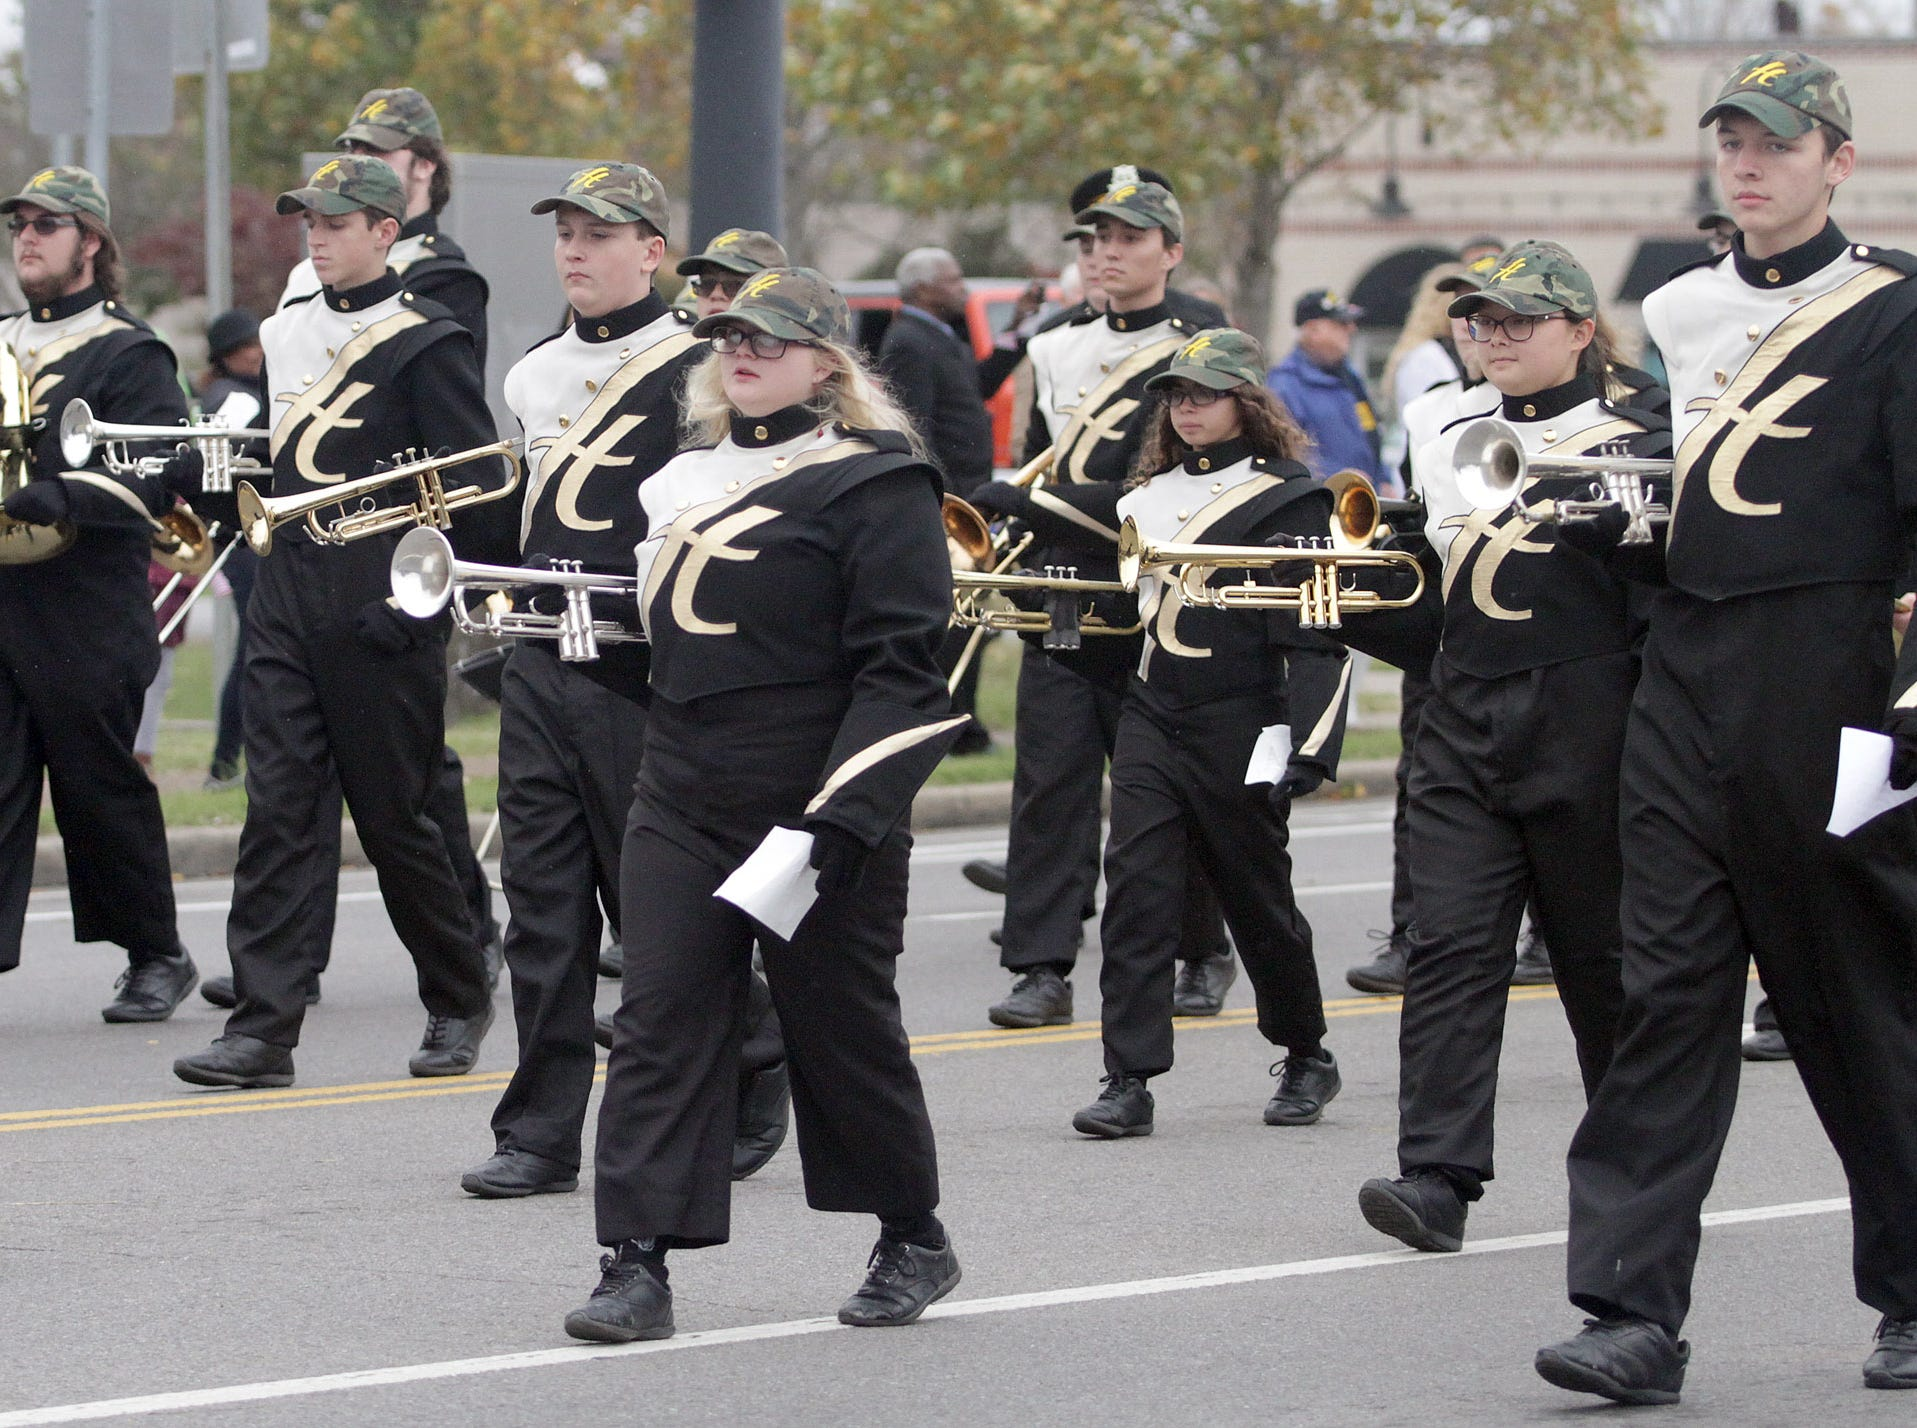 The Hendersonville High School Band marches in the Veterans Day Parade on Sunday, November 4, 2018.